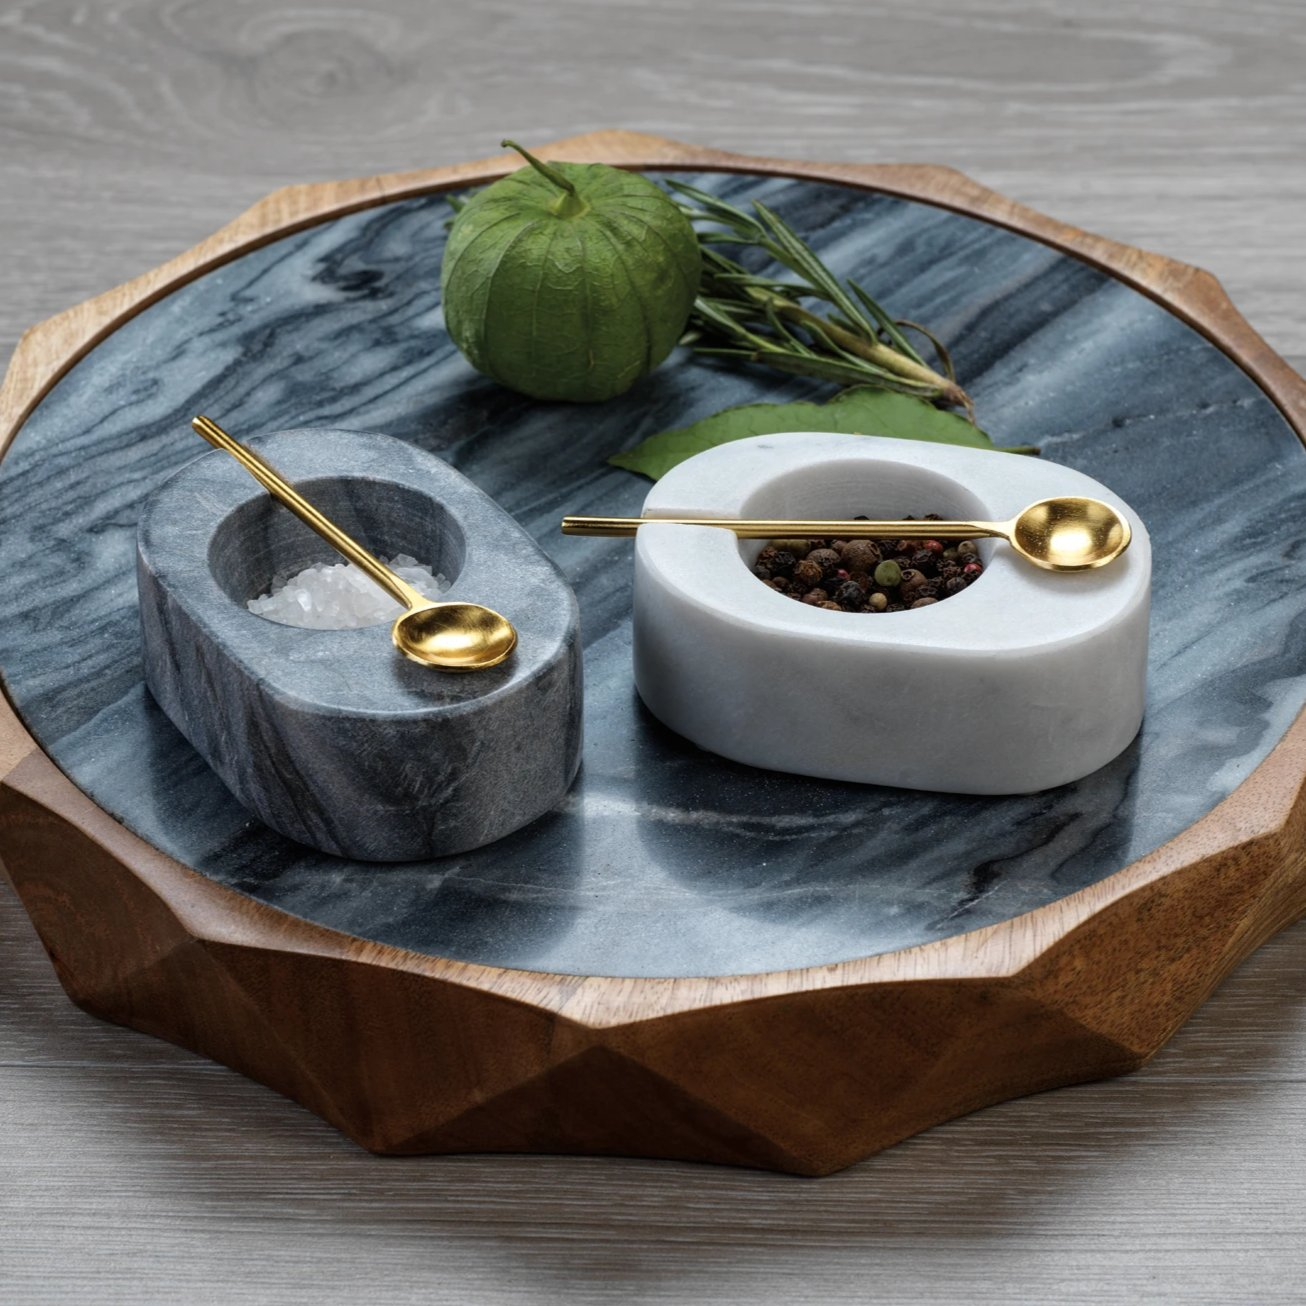 Tuscan Marble Salt & Pepper Bowl with Gold Spoon - CARLYLE AVENUE